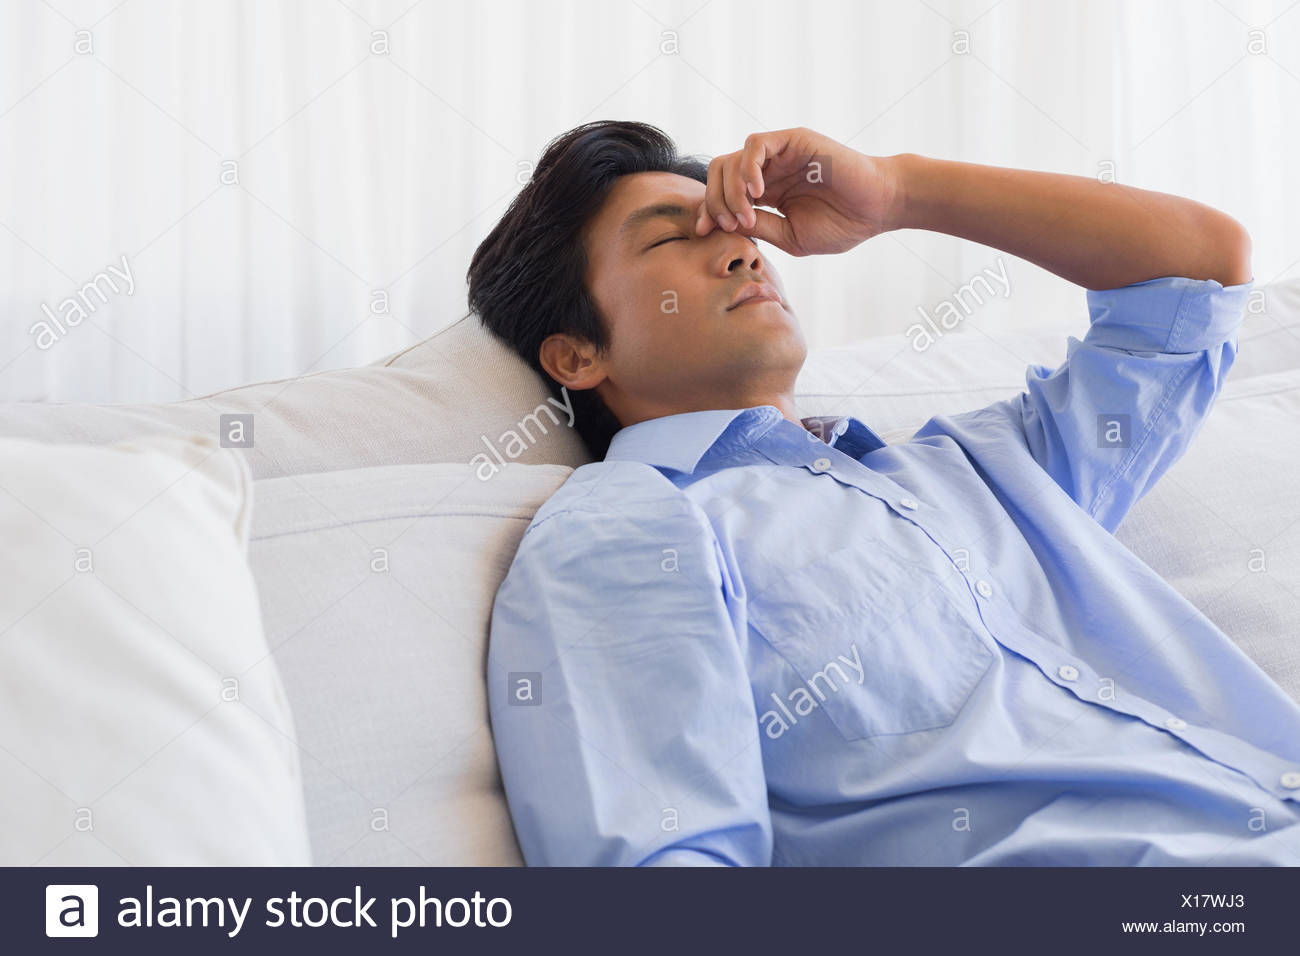 Man sitting on couch with a headache - Stock Image